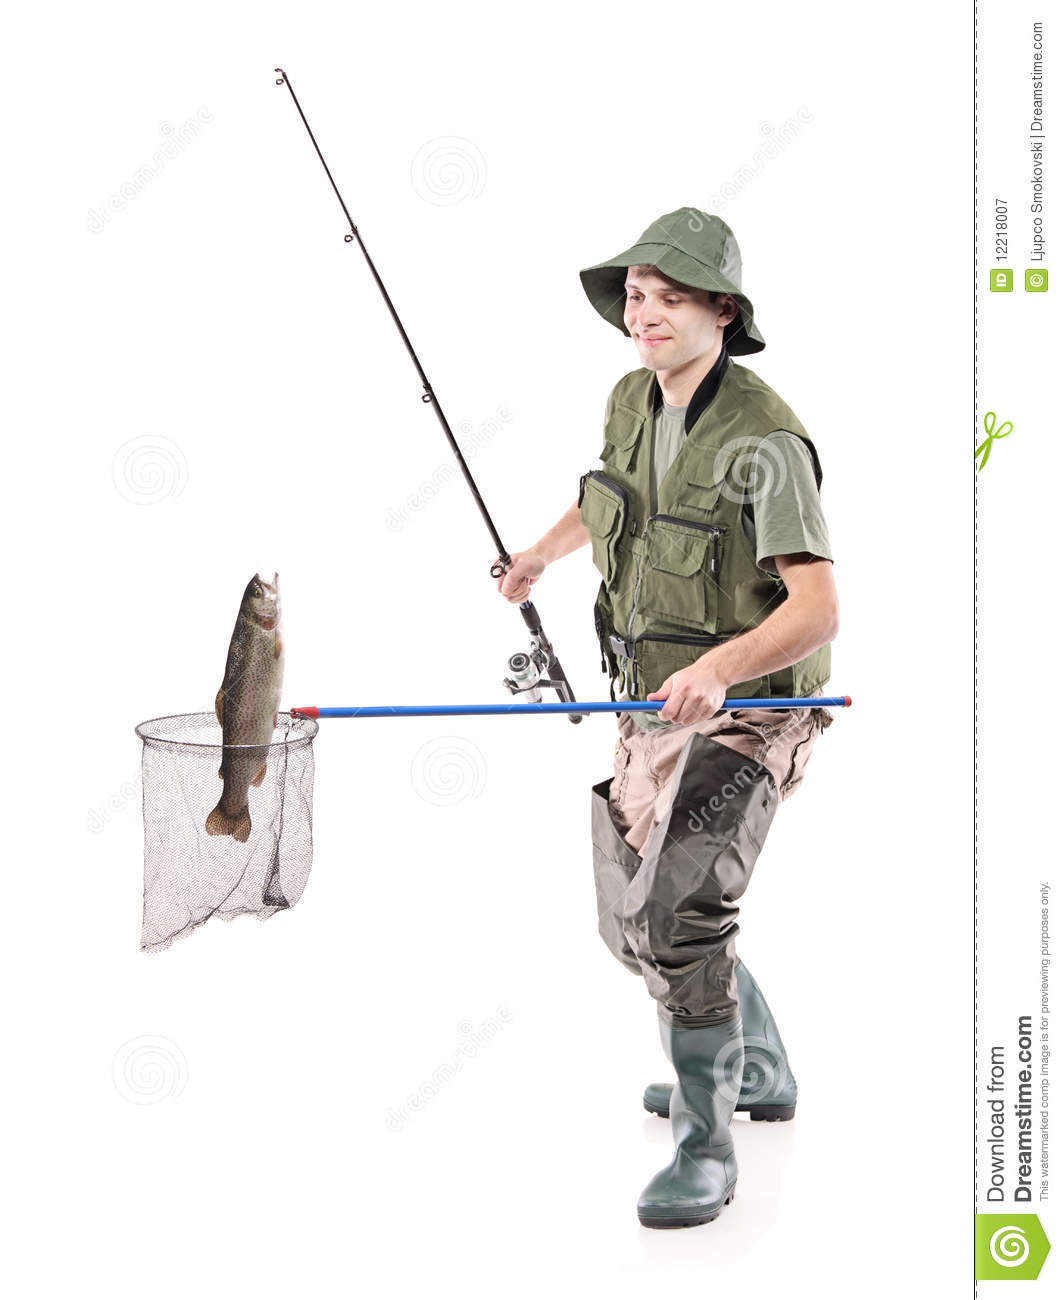 Fisherman putting a fish into a fishing net stock image for Fishing times free